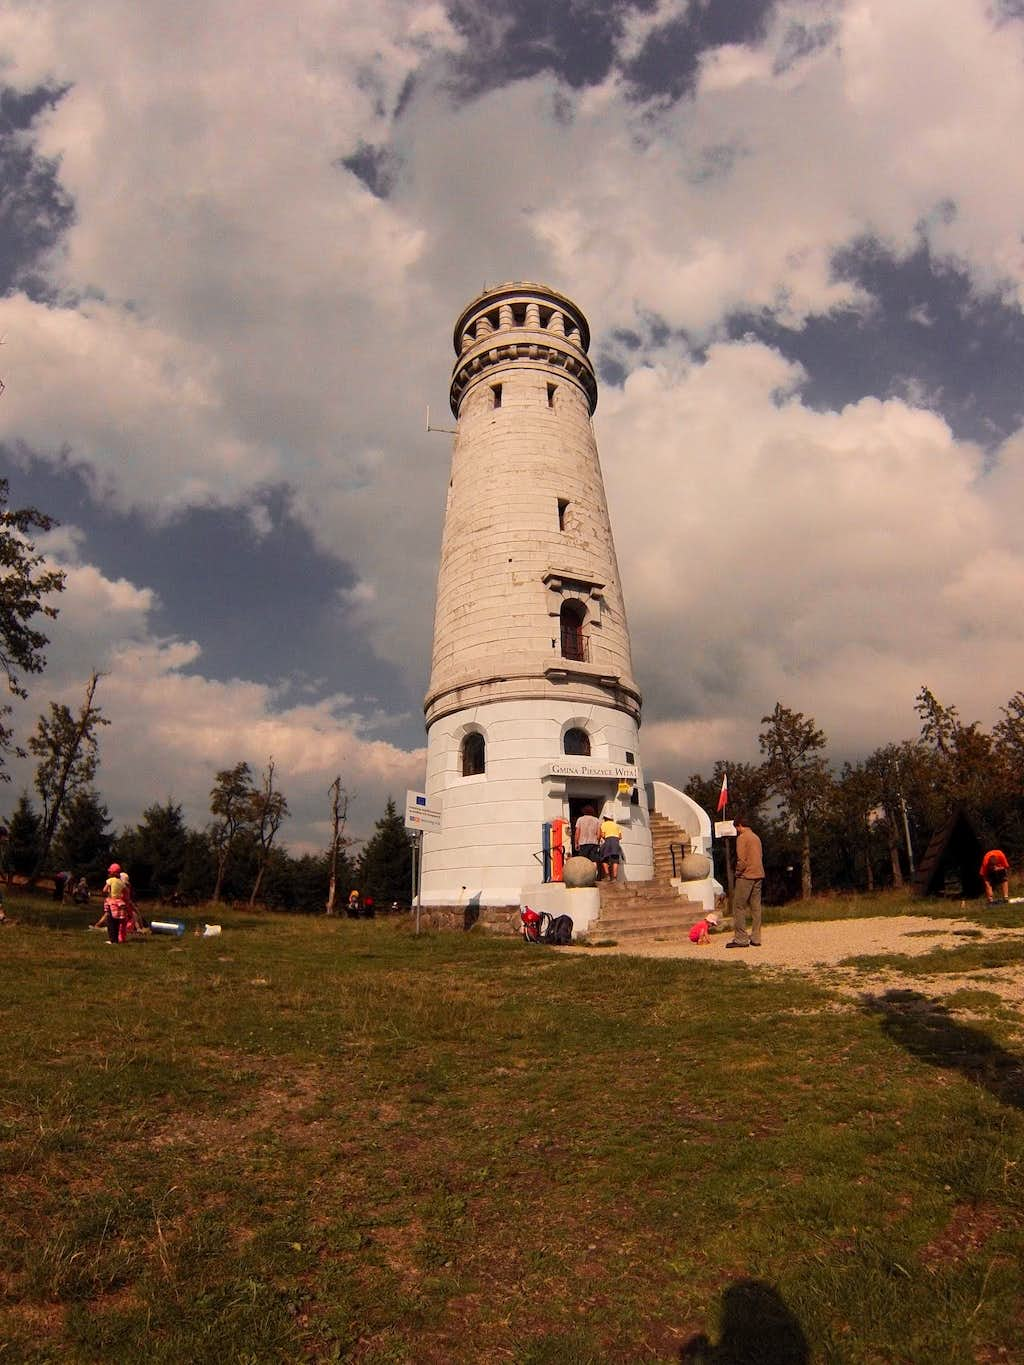 Outlook tower